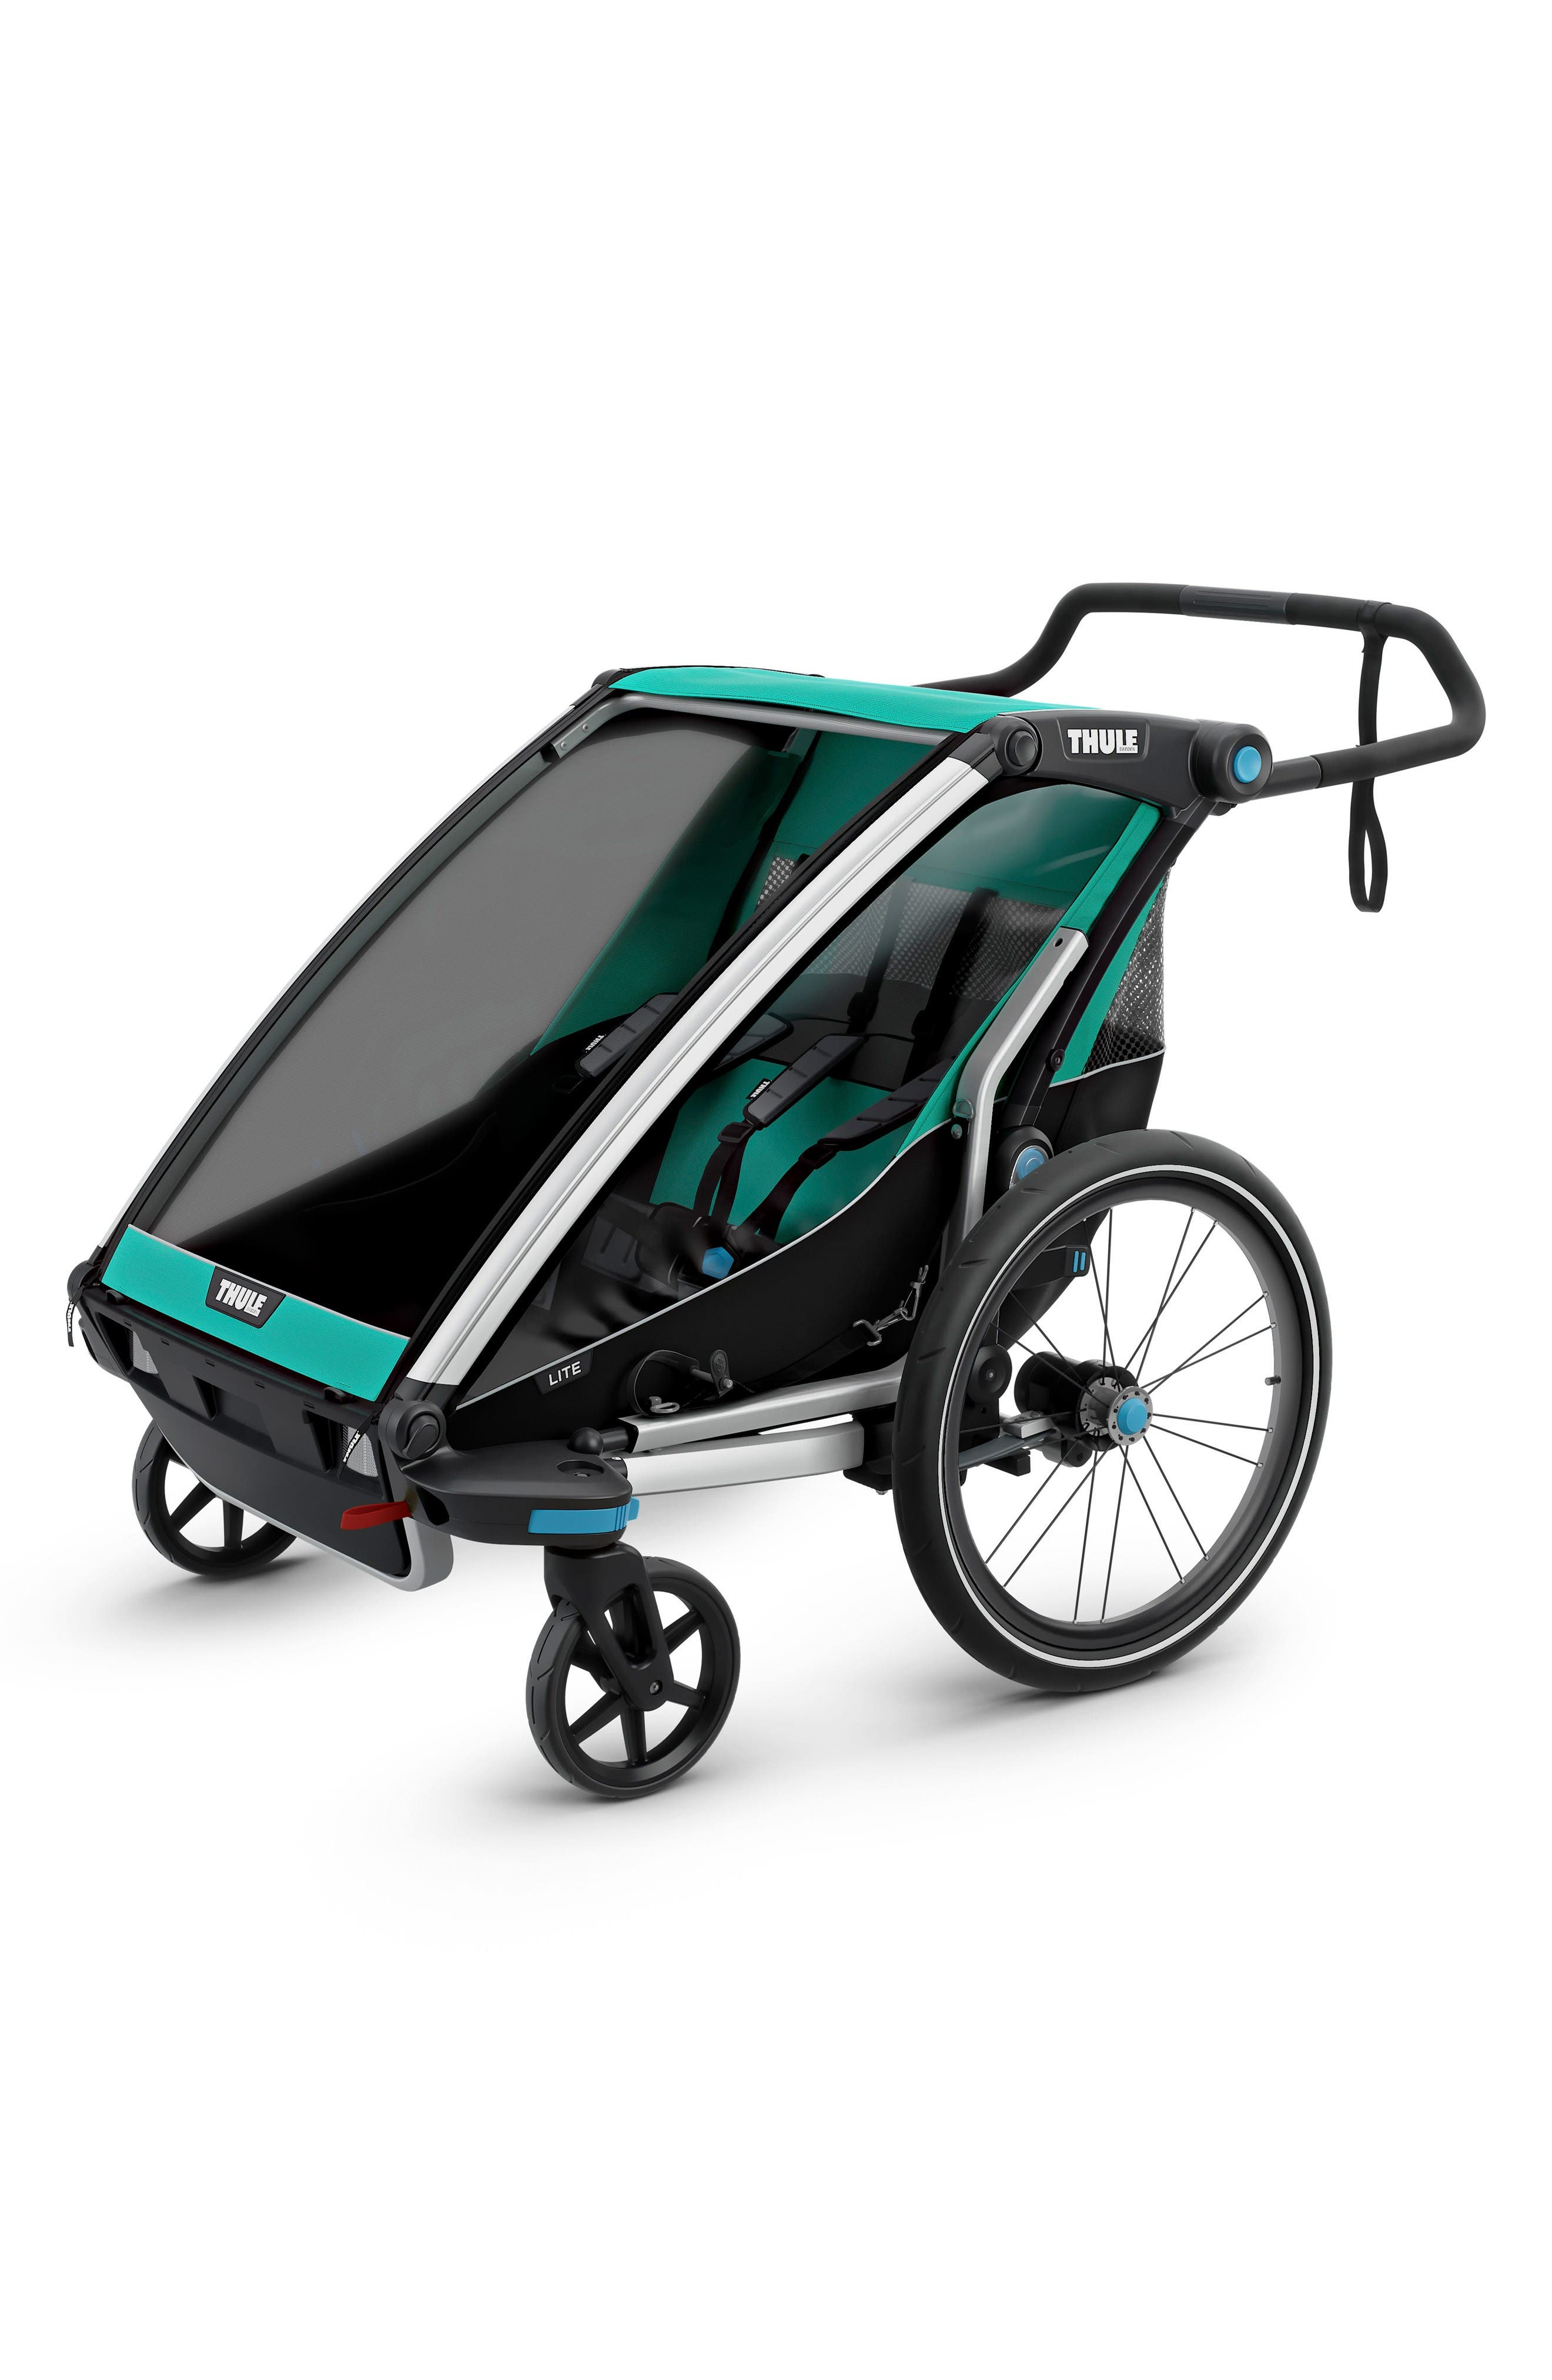 Main Image - Thule Chariot Lite 2 Multisport Double Cycle Trailer/Stroller